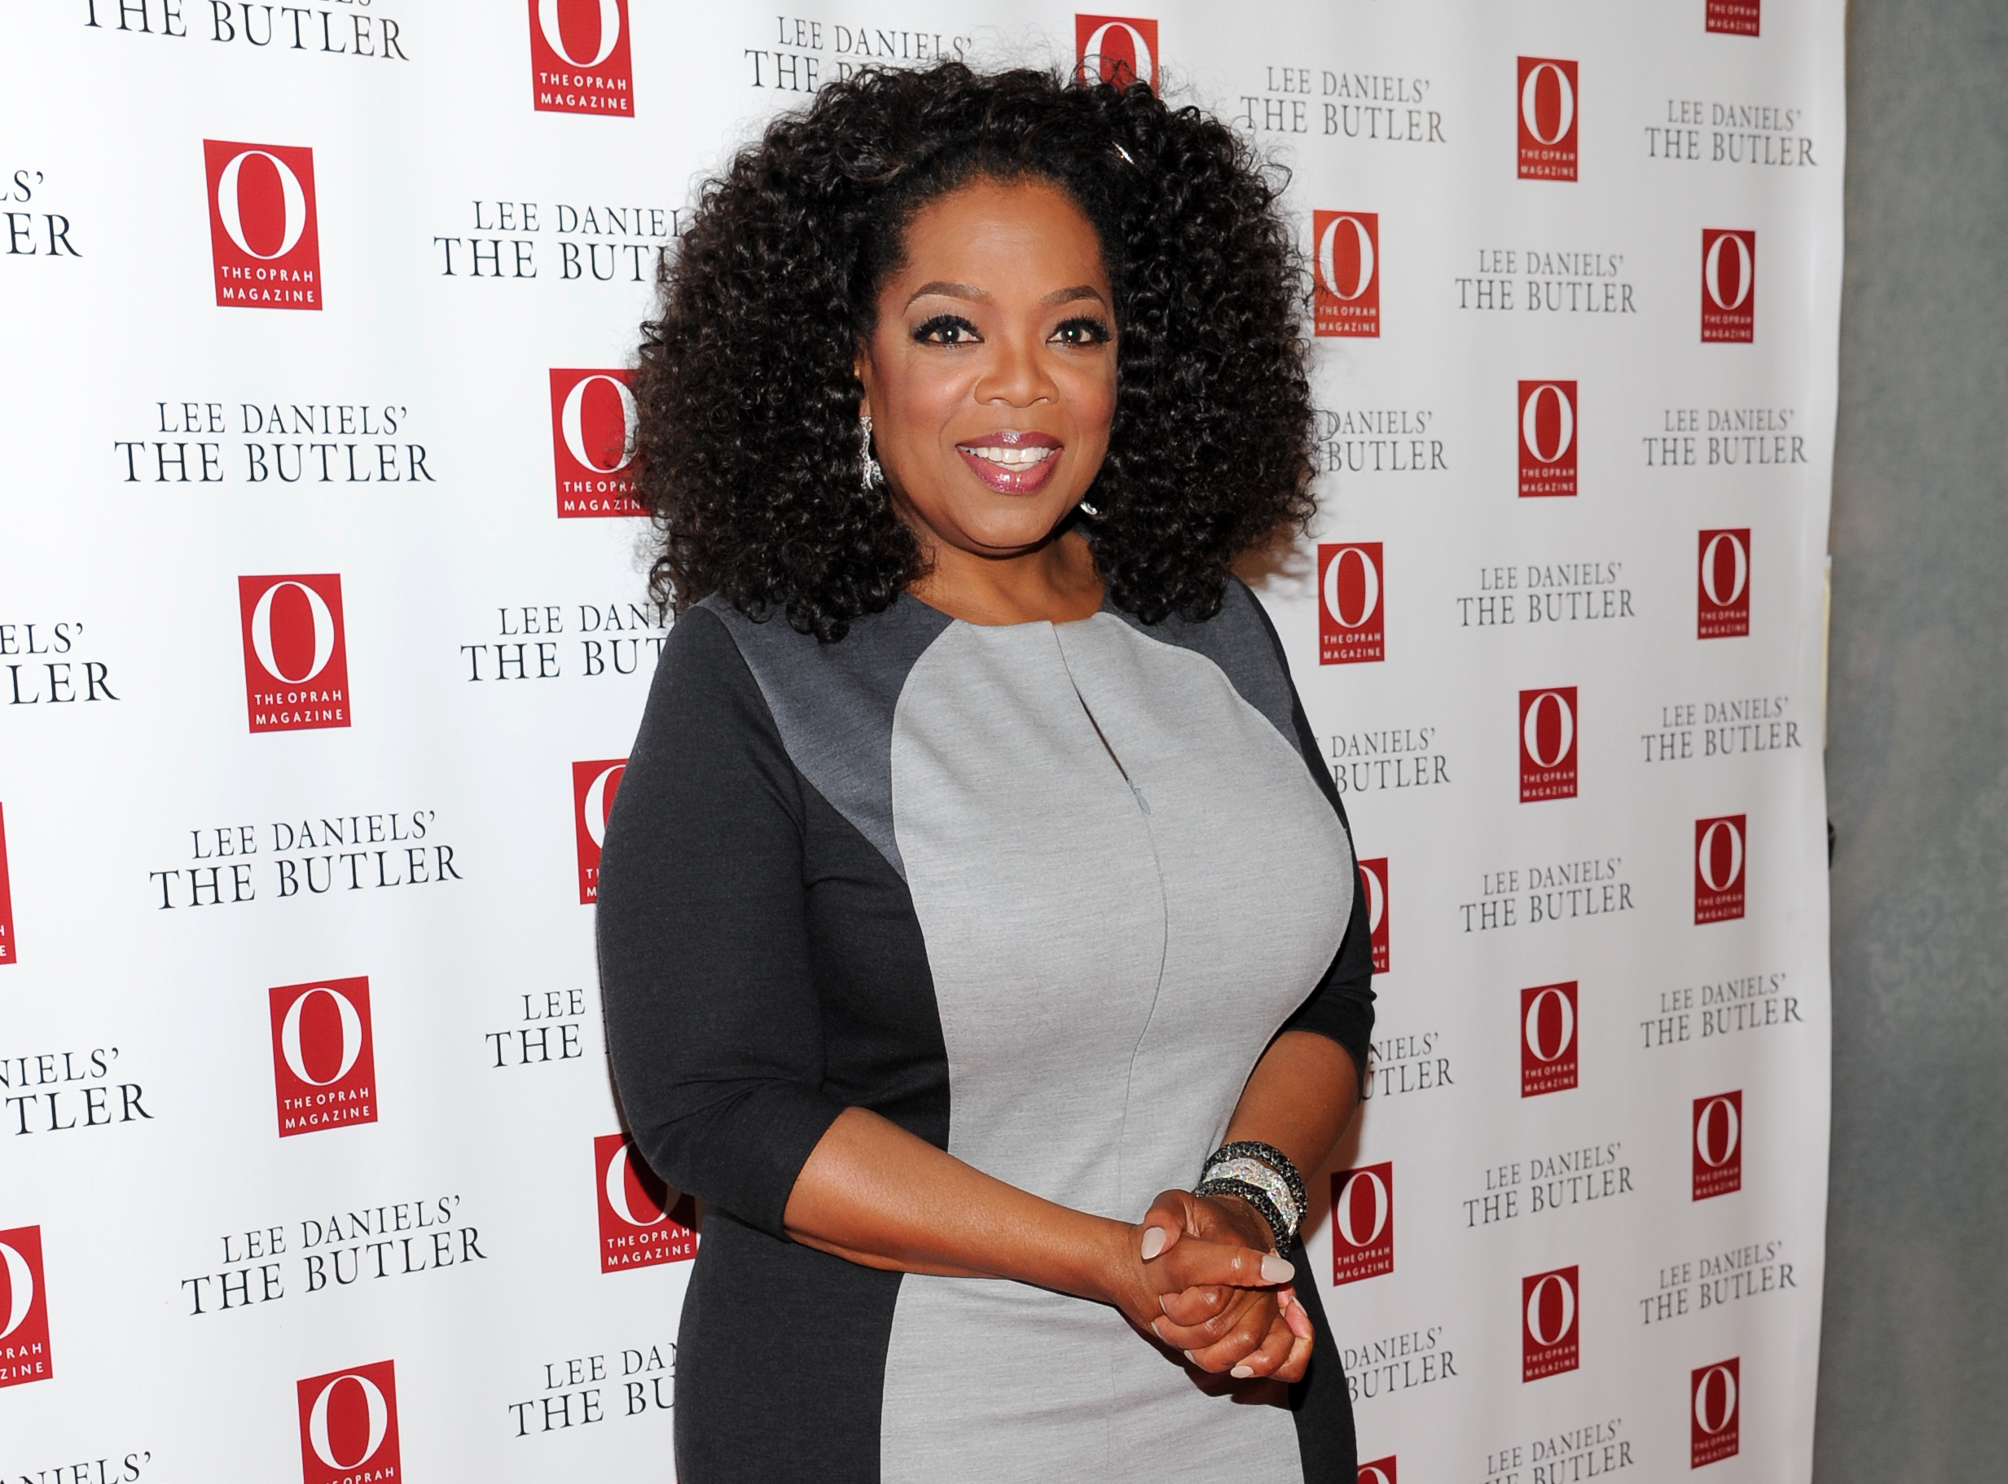 Oprah Gives a Behind-the-Scenes Peek at Her Transformation Into a 95-Year-Old Woman for 'The Butler'